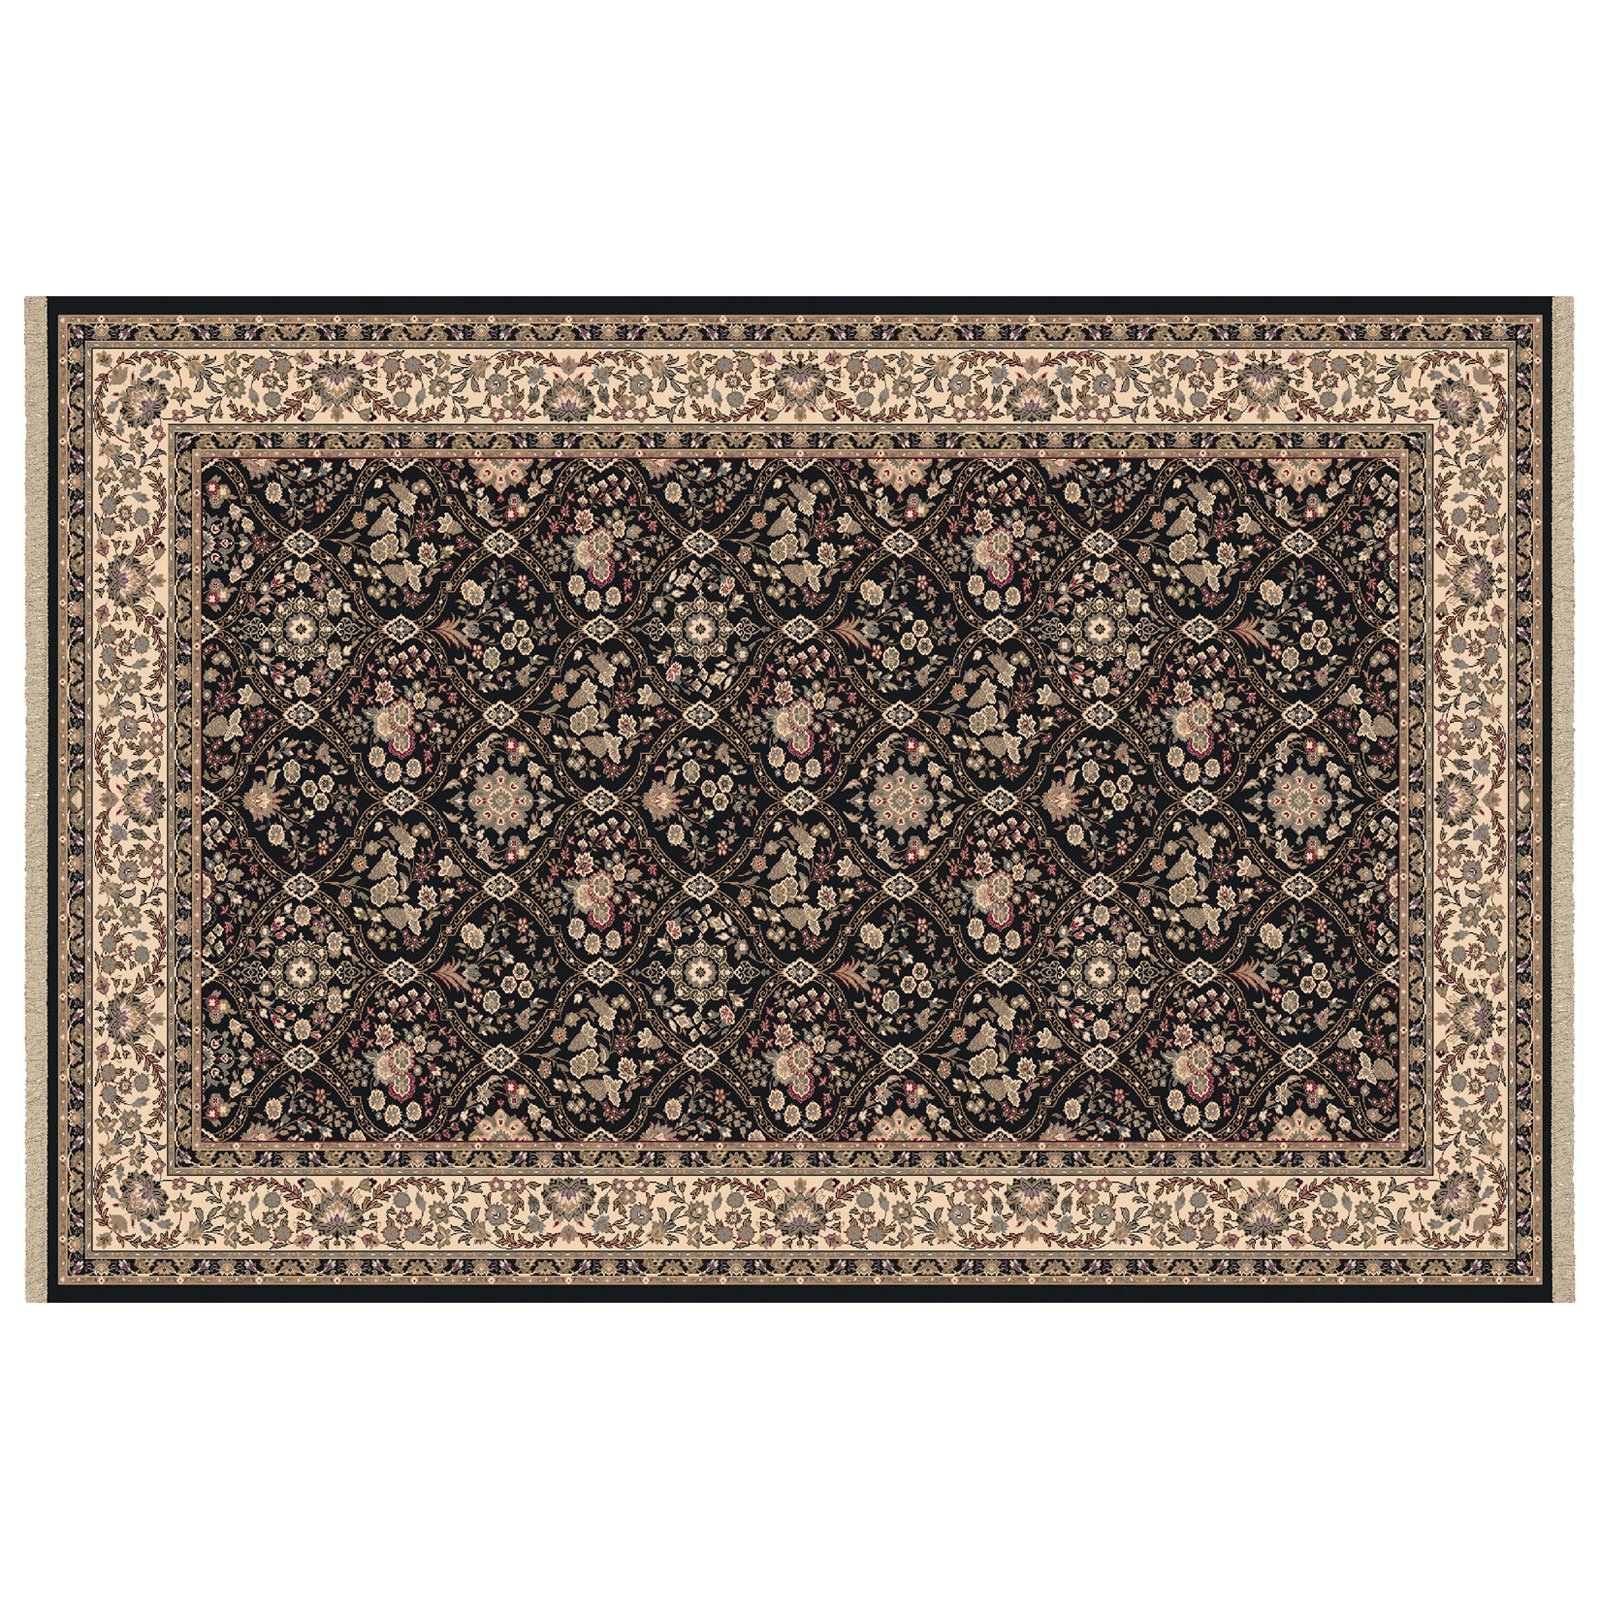 Dynamic Rugs Brilliant Collection Wool Hearth Rug-Black Onyan by Dynamic Rugs